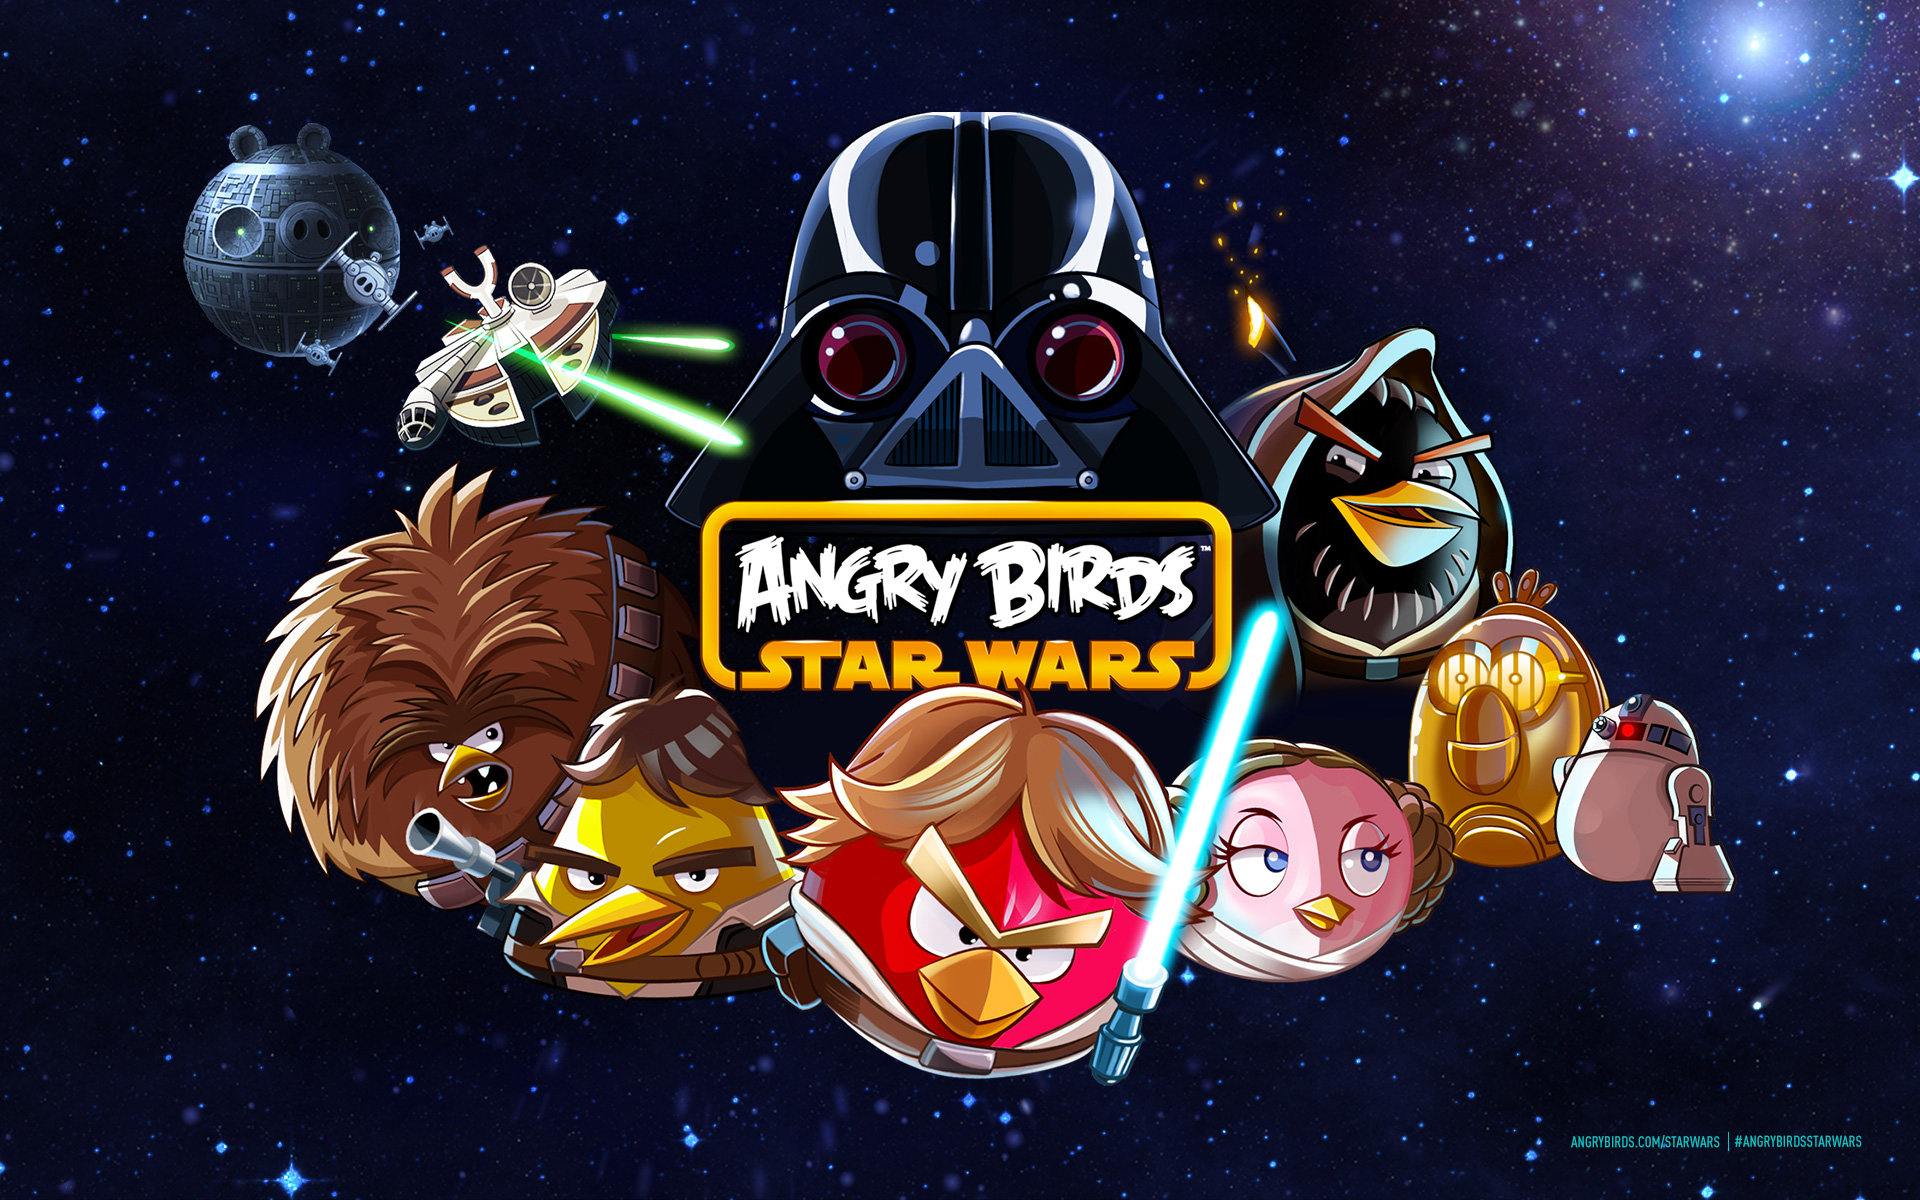 Angry Birds Star Wars Wallpaper - Angry Birds Wallpaper ...